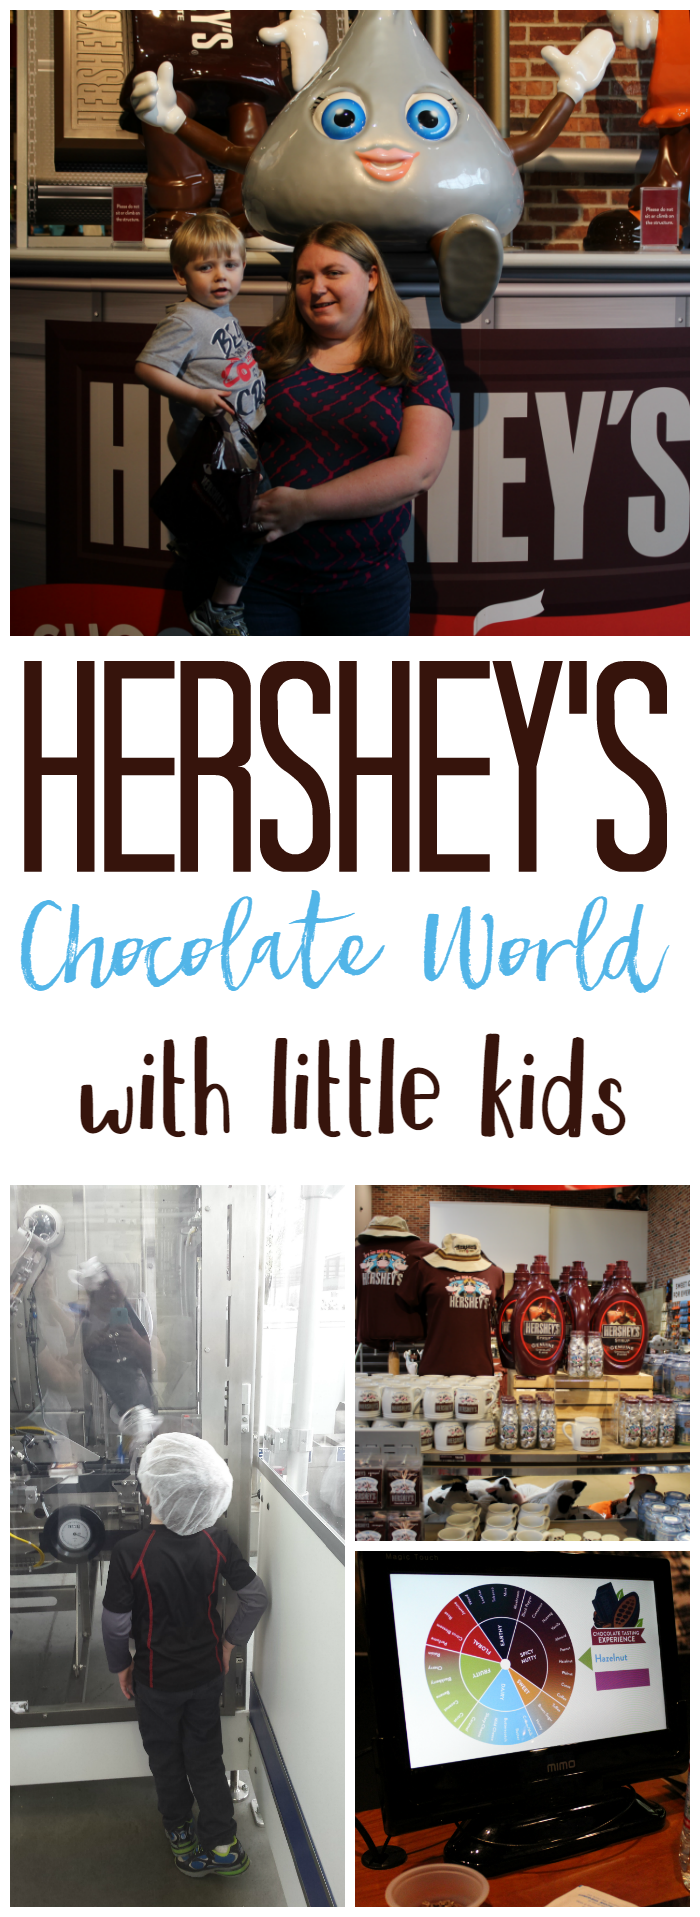 Hershey's Chocolate World is a must-see stop while in Hershey, PA! And it's great for the little kids, too!